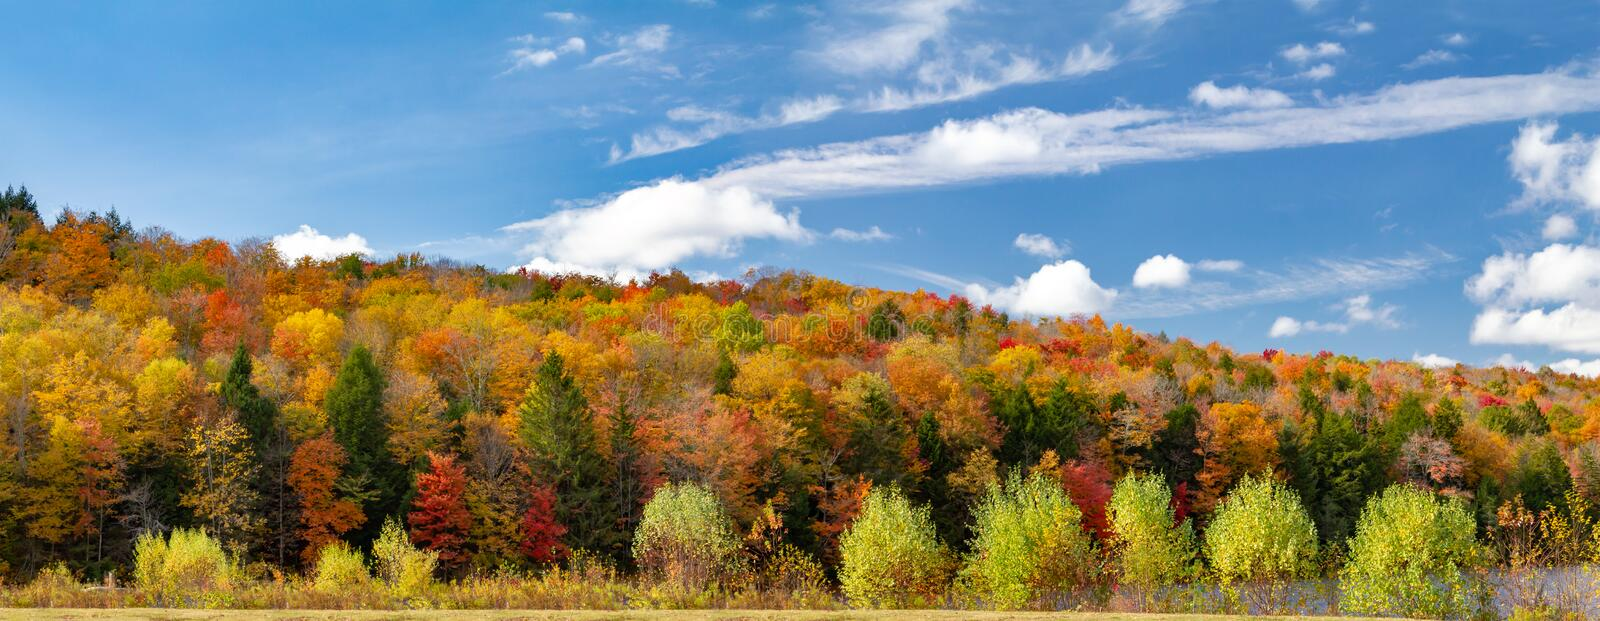 Colorful fall forest foliage in panoramic New England landscape. Colorful fall forest foliage in panoramic New England autumn landscape scene royalty free stock photo